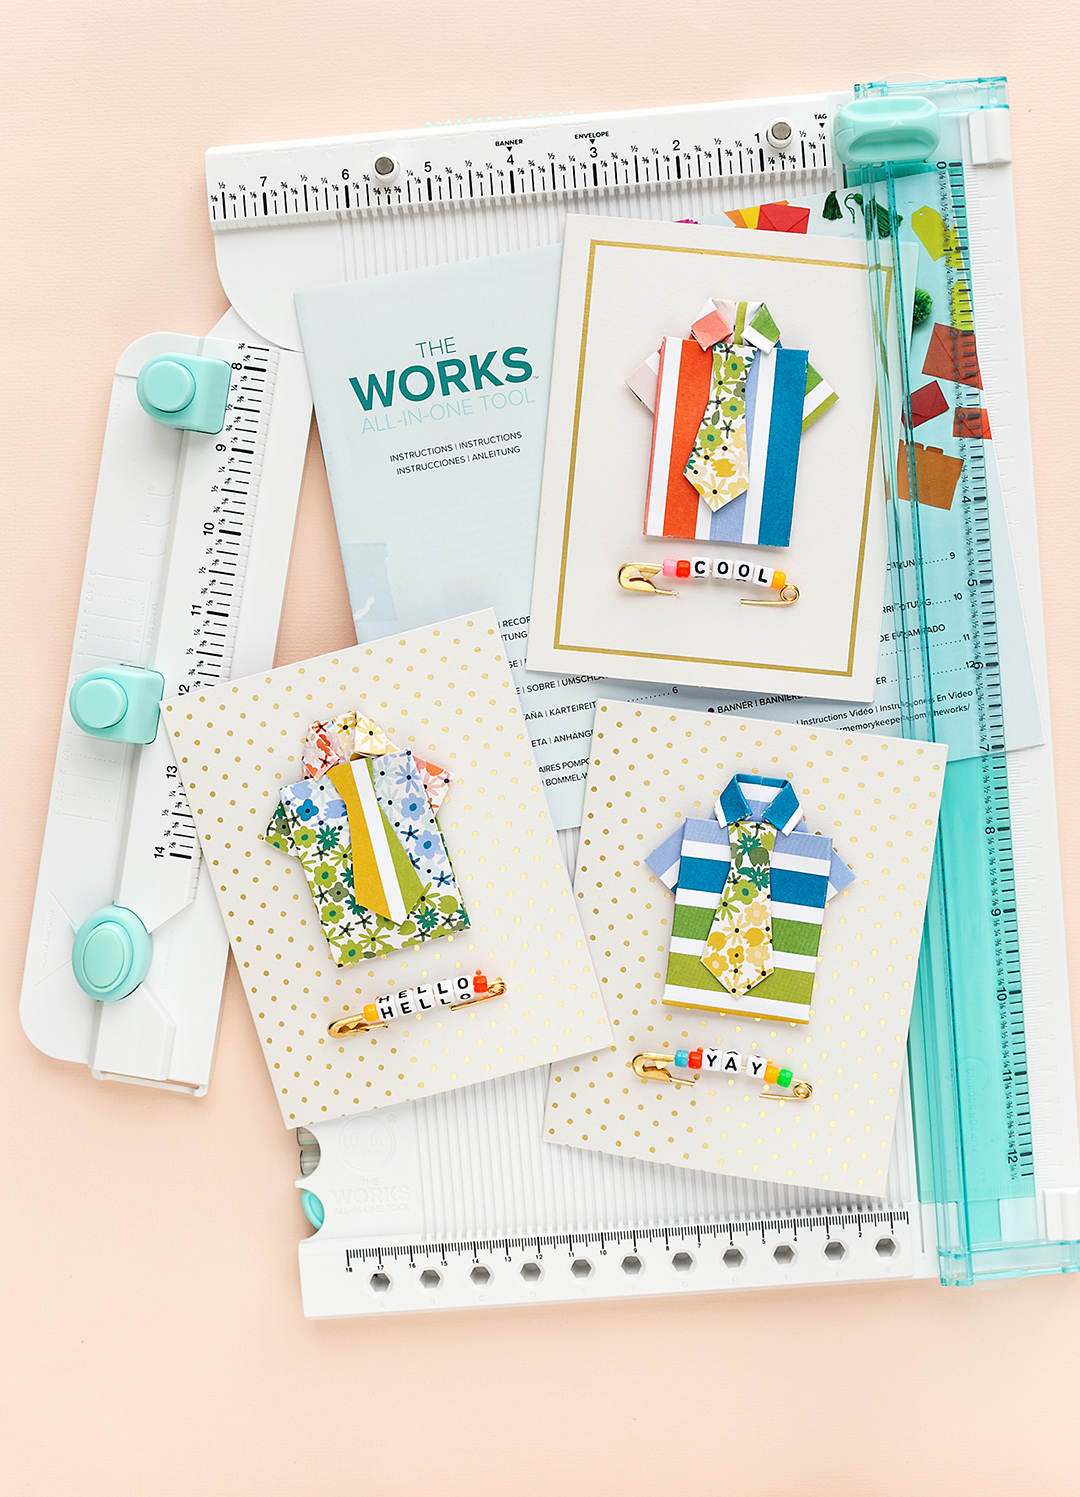 The Works All-In-One-Tool with three cards with shirts and ties. The shirts are colorful and modern. Cardmaking WRMK